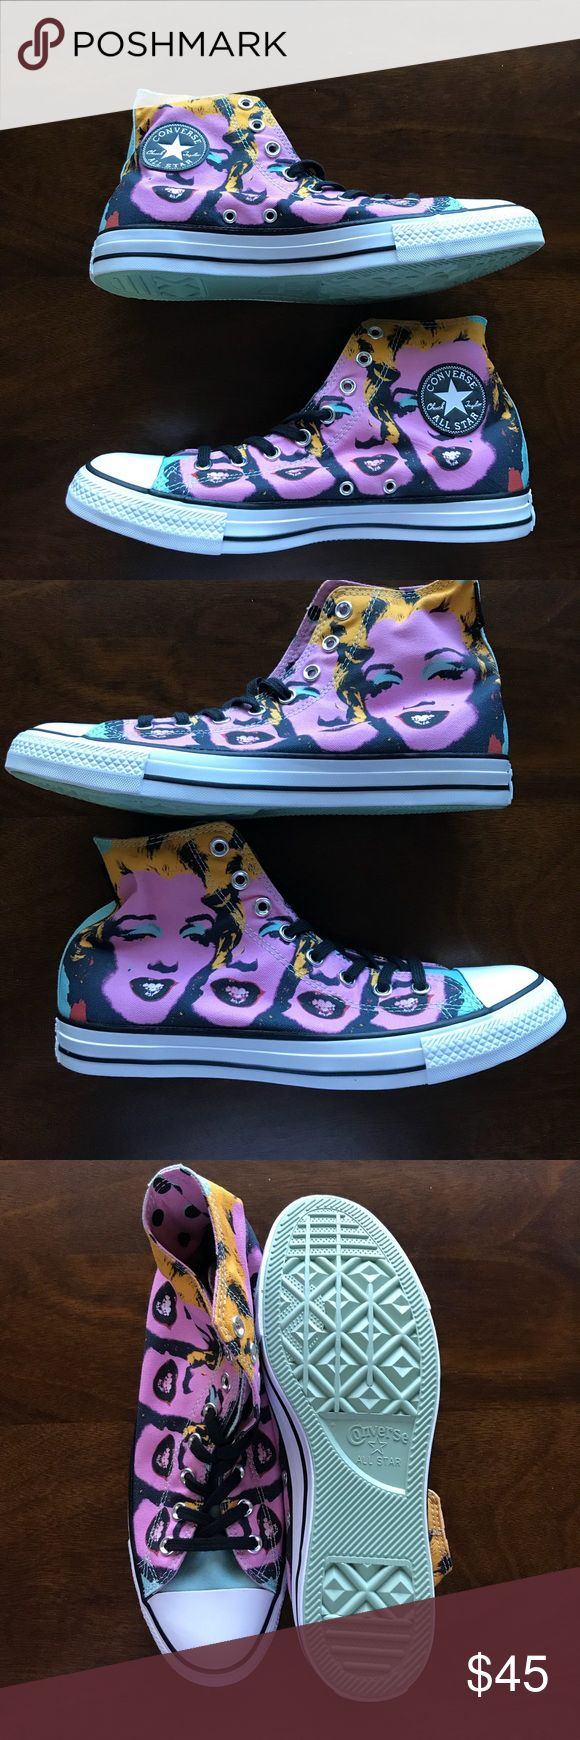 NIB Converse Andy Warhol Marilyn Monroe. Brand new Andy Warhol Marilyn Monroe print Converse Chuck Taylor. Size 9 men's 11 Women's Price firm $35 Converse Shoes Sneakers